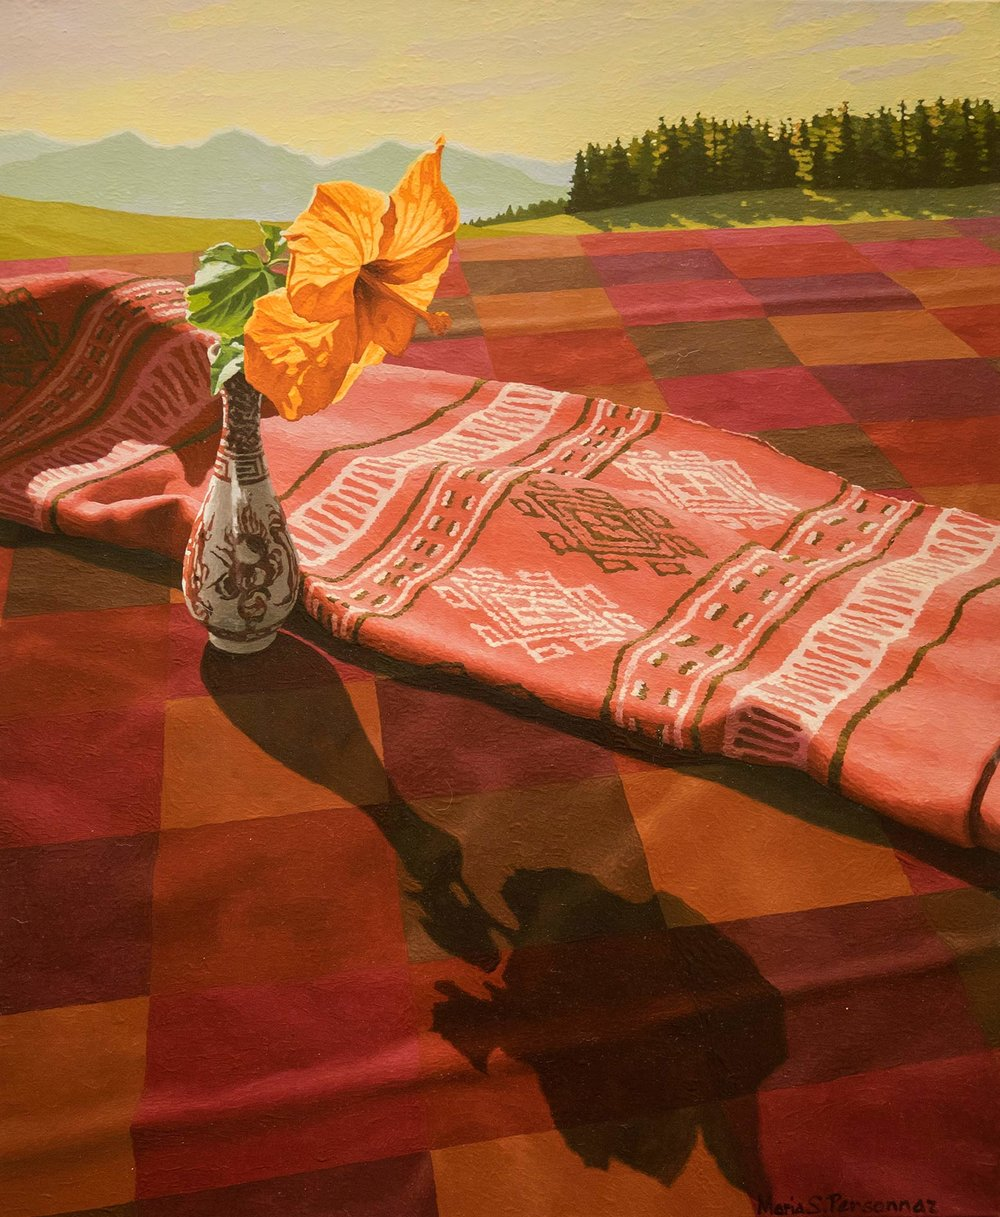 Hibiscus flower, scarf and mountains